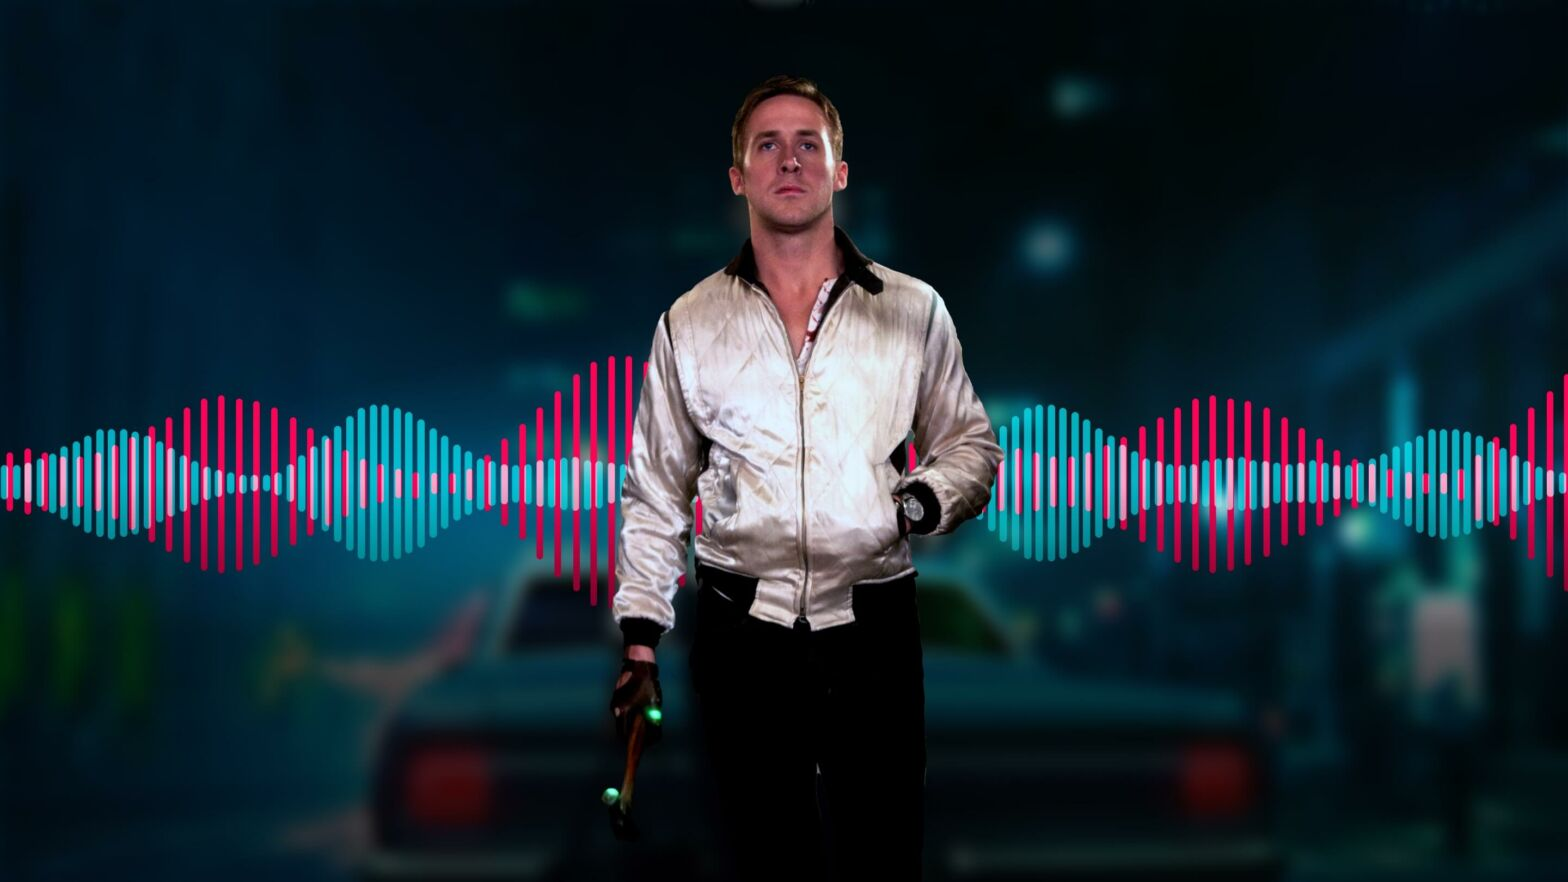 Drive Opening Scene How Refn Builds Suspense with Sound Design and Editing